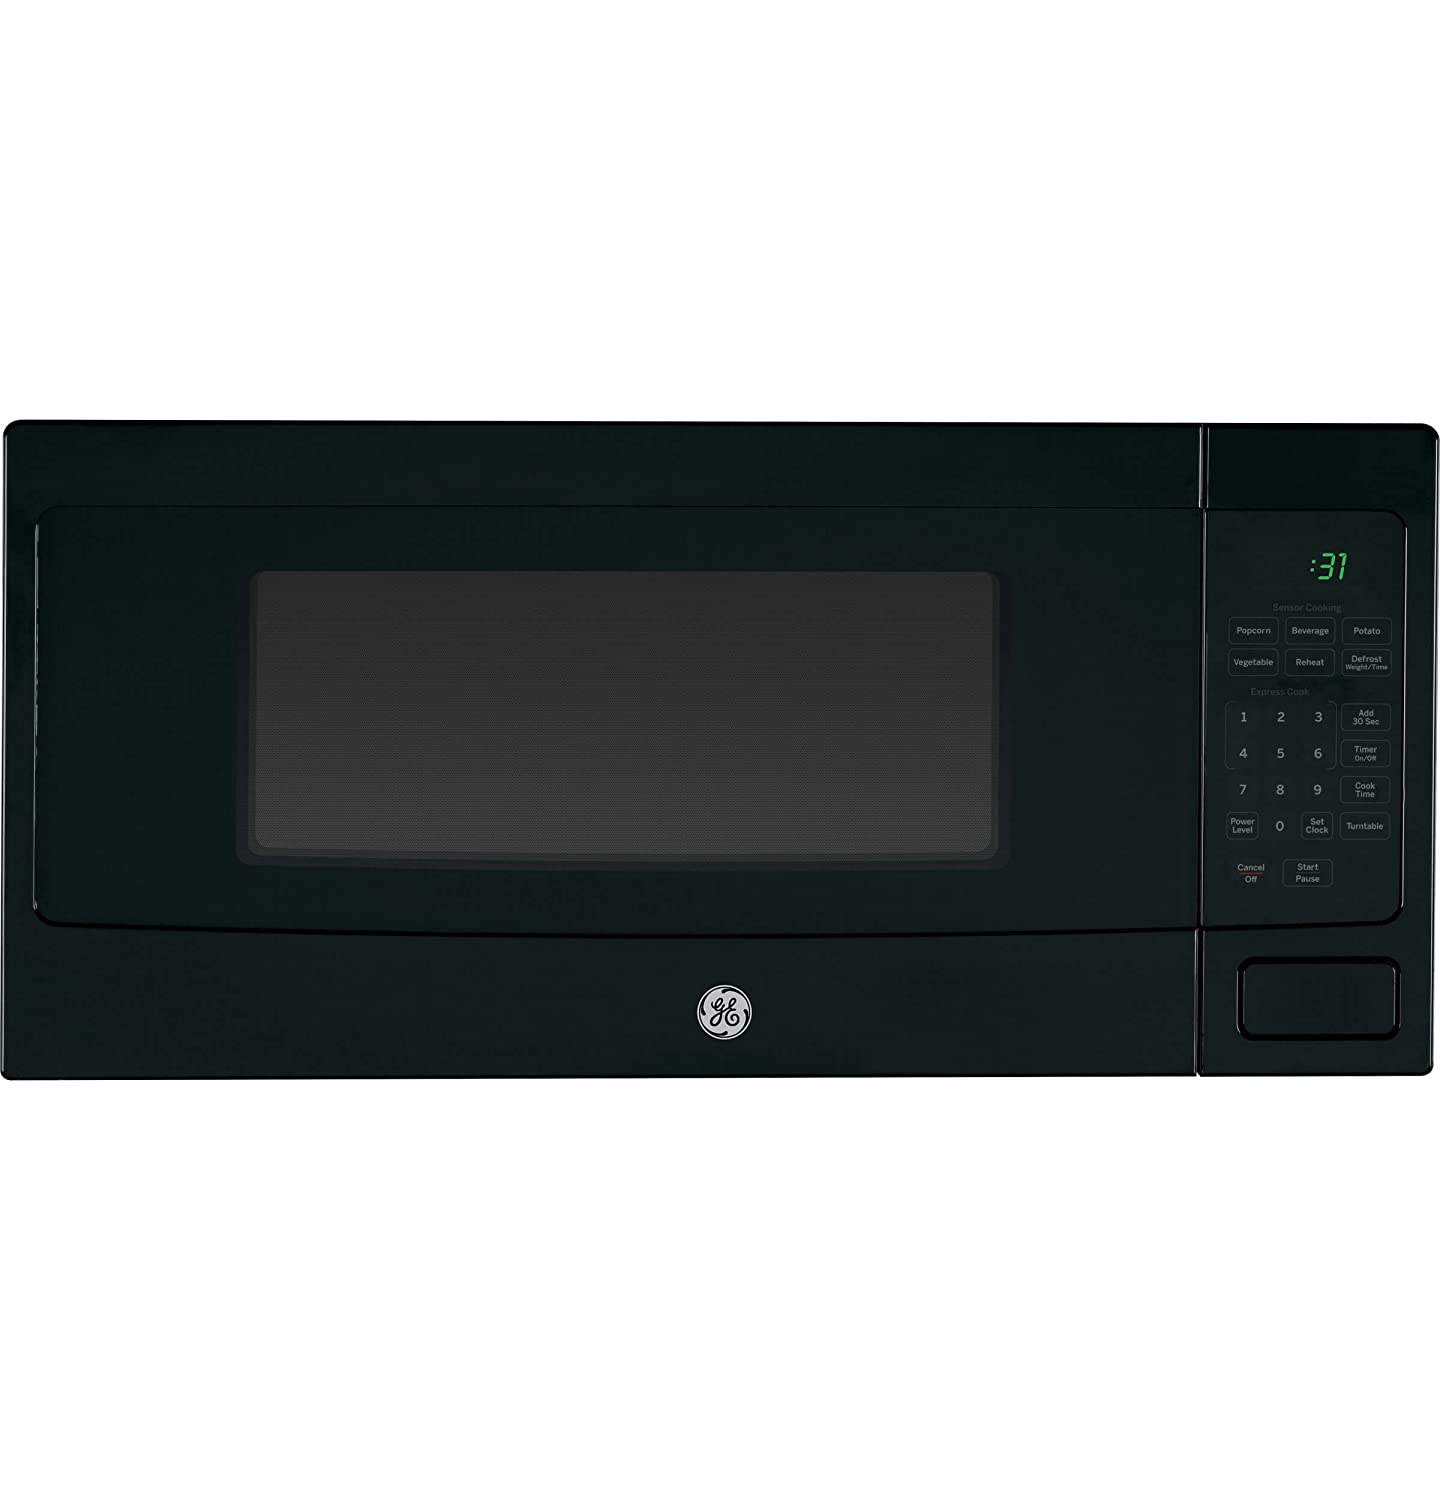 "GE Profile PEM31DFBB 24"" 1.1 cu. ft. Capacity counter top Microwave Oven in Black"